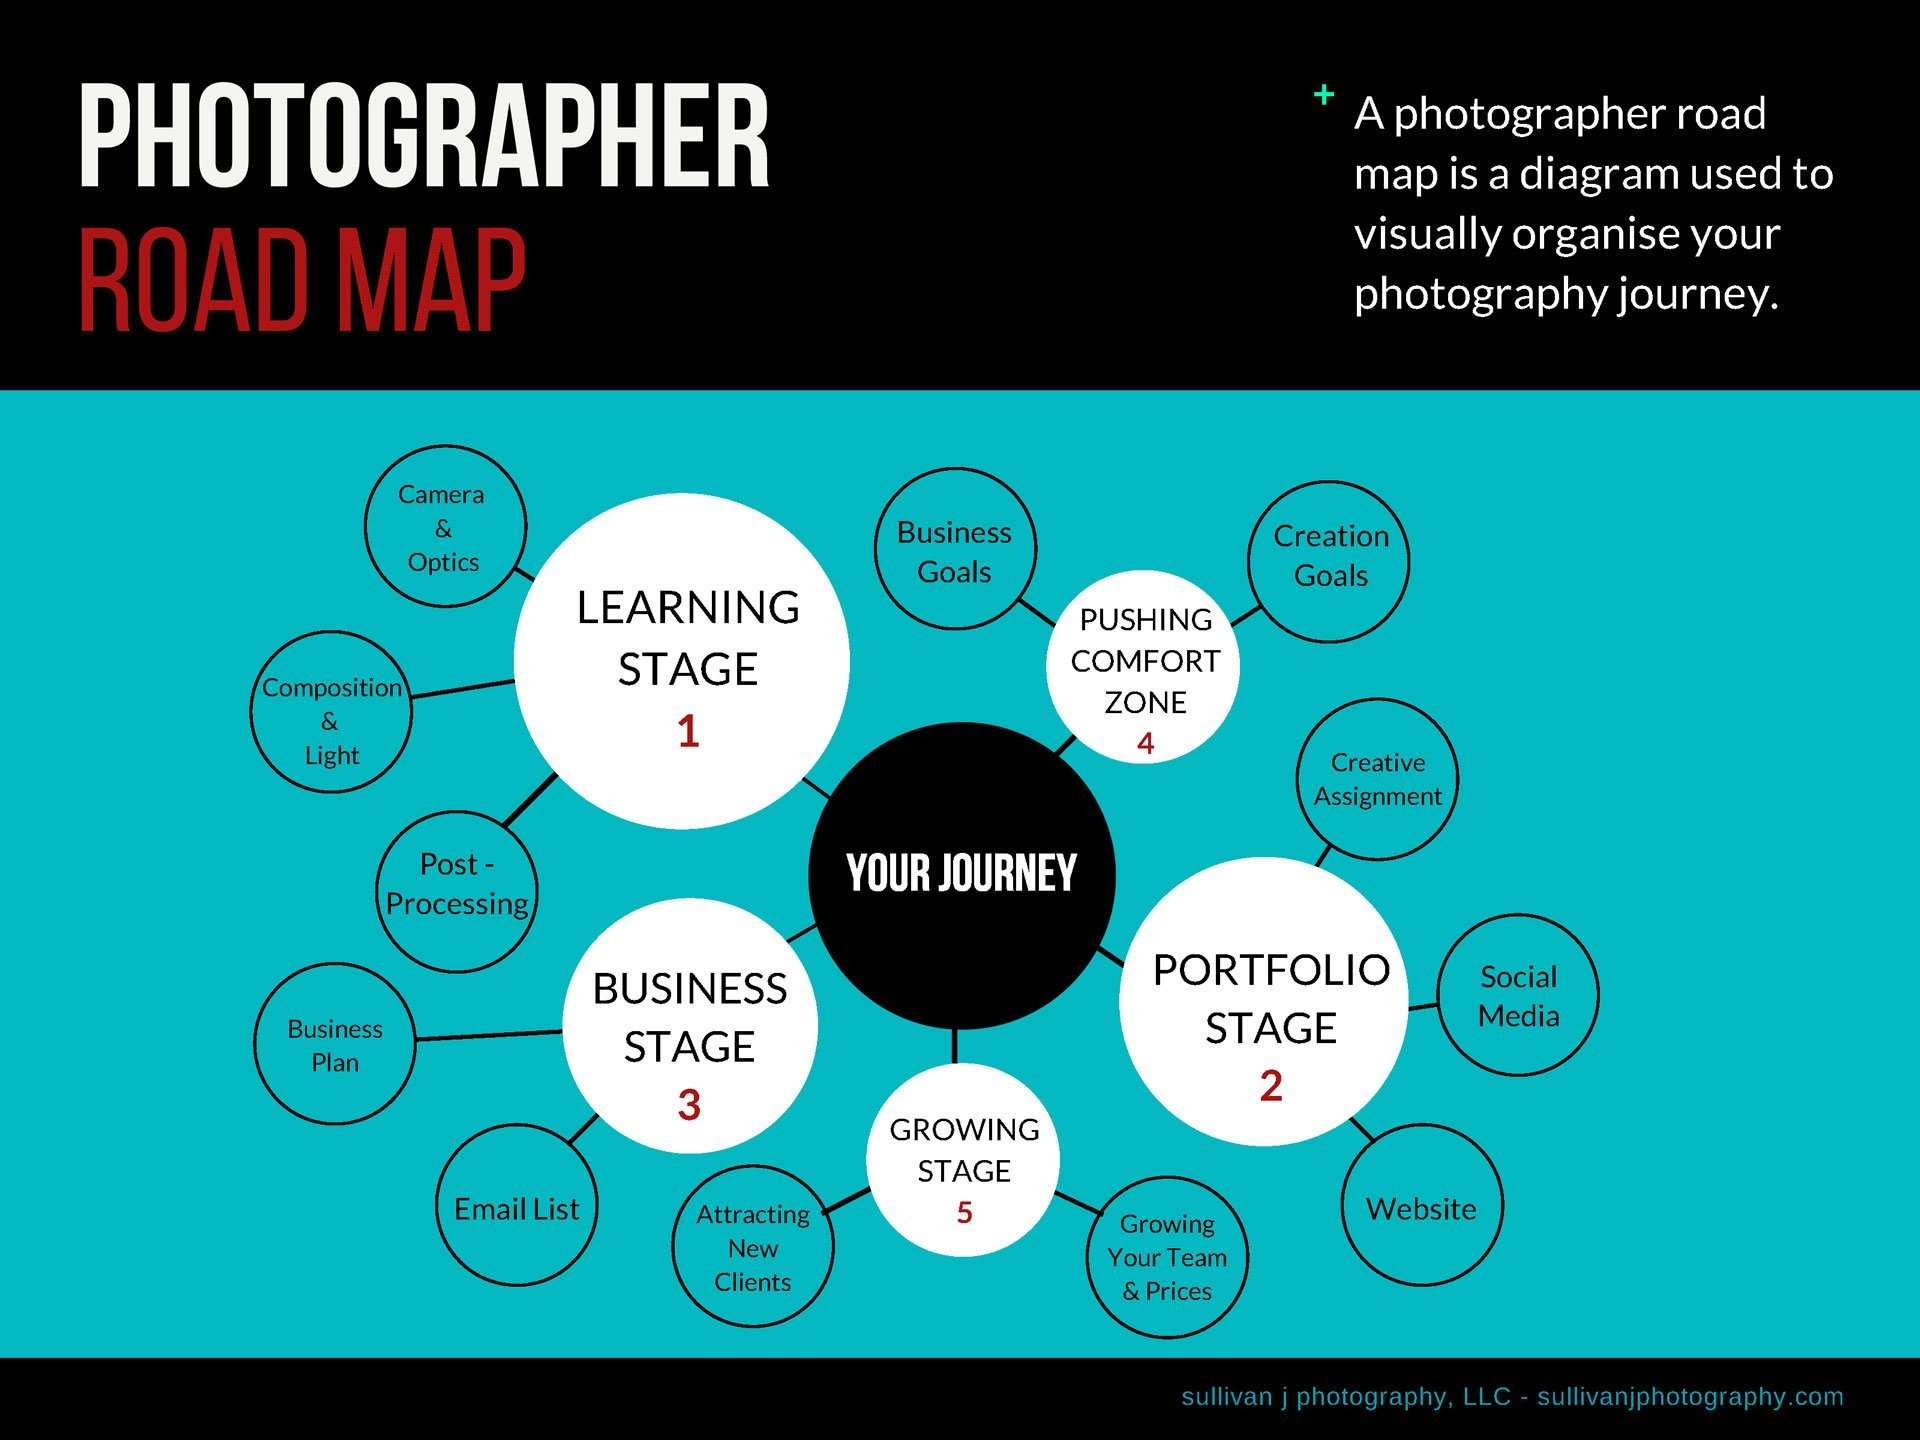 AFSer Photographer Road Map